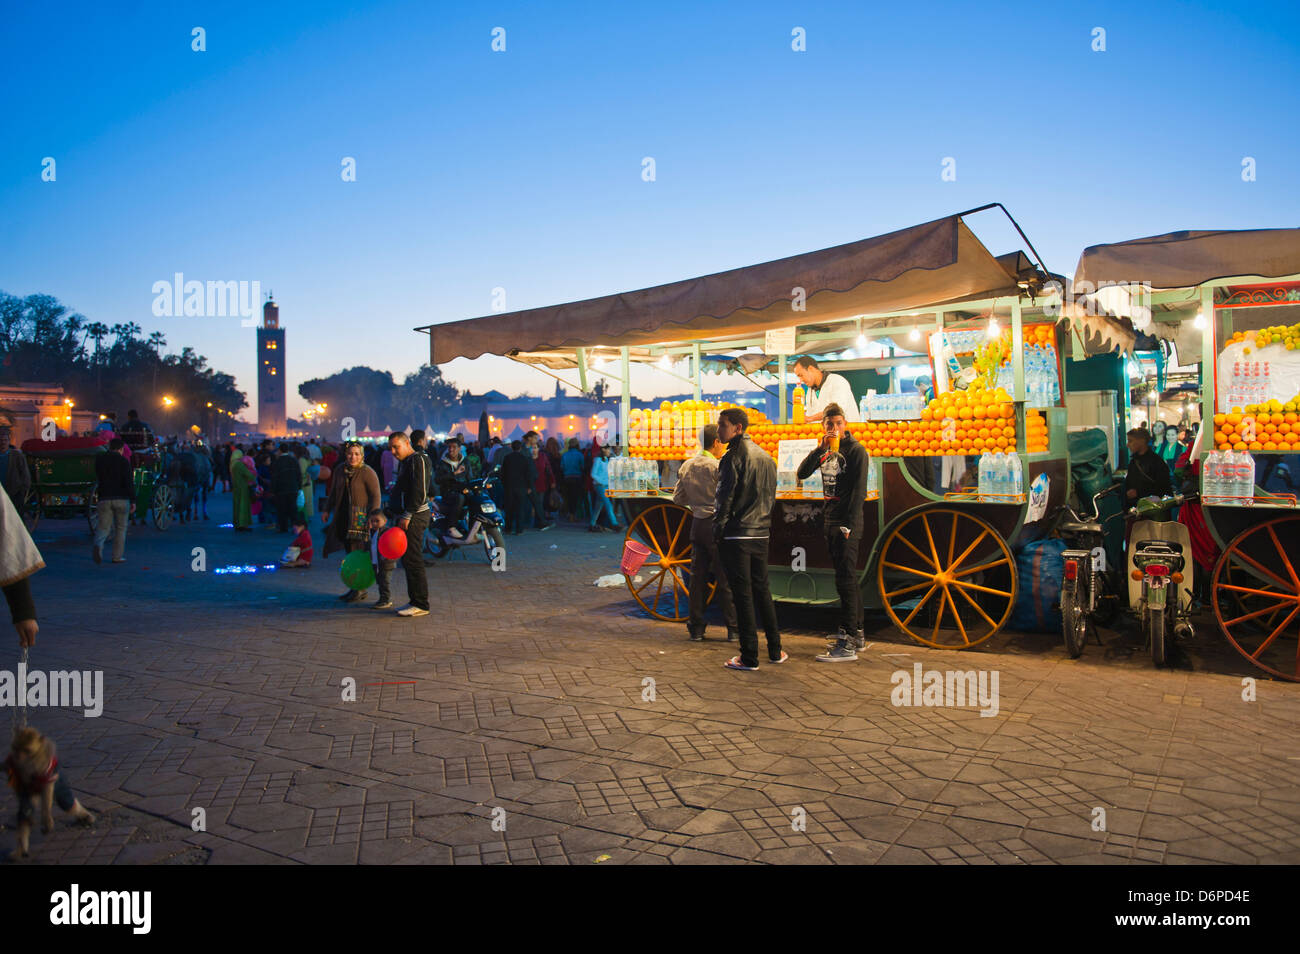 Fresh orange juice stall at night, Place Djemaa El Fna, Marrakech, Morocco, North Africa, Africa - Stock Image